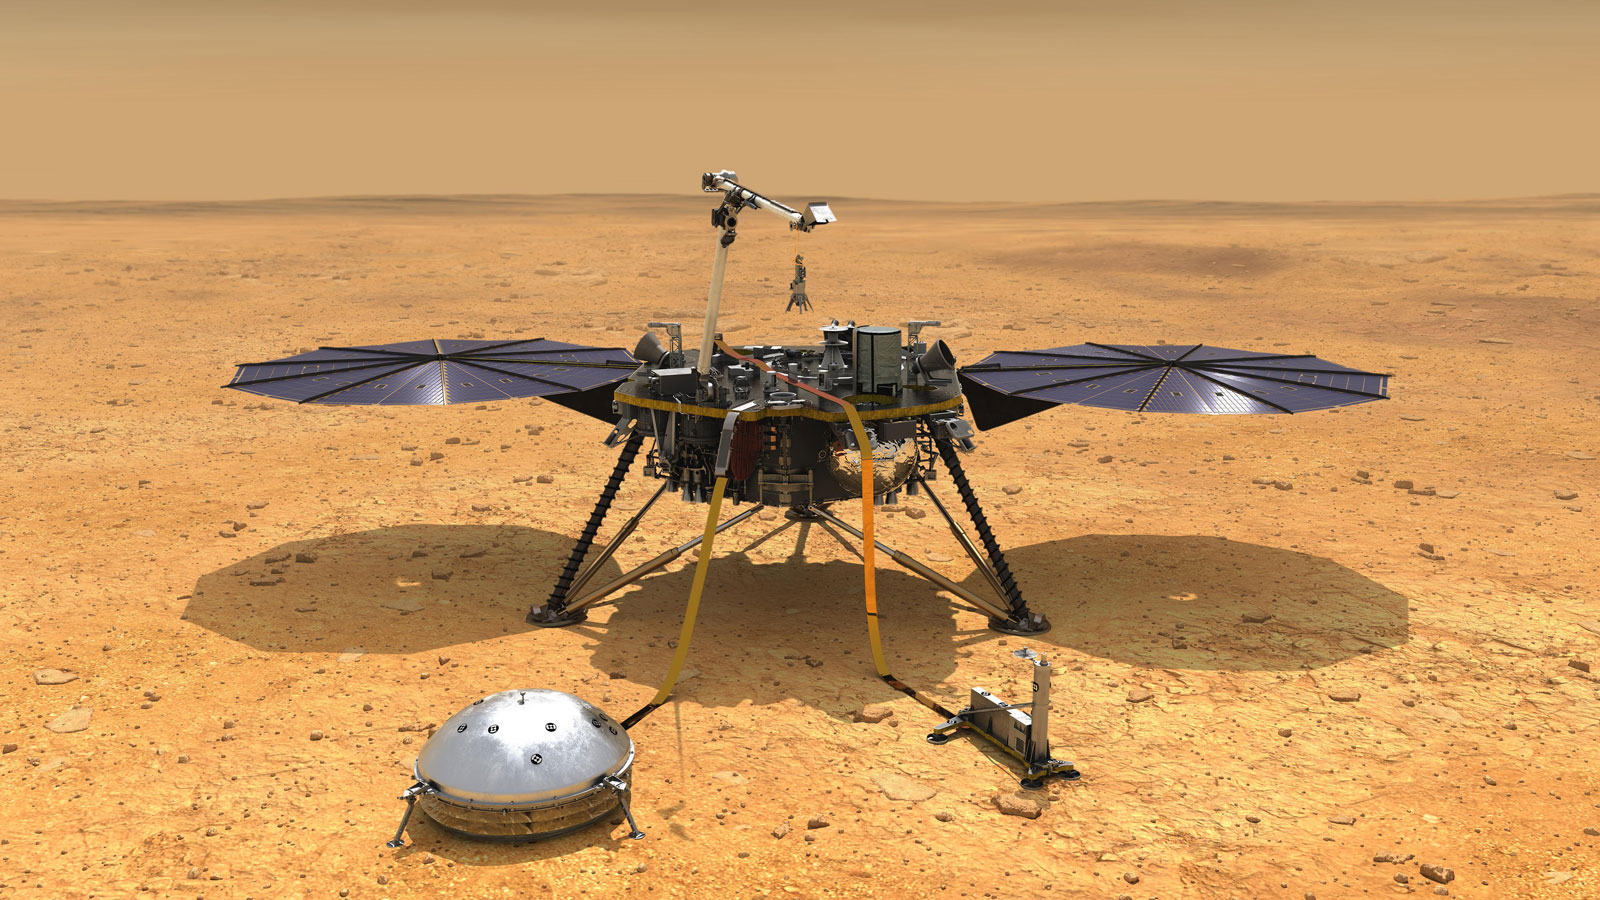 NASA's InSight spacecraft with its instruments deployed on the Martian surface